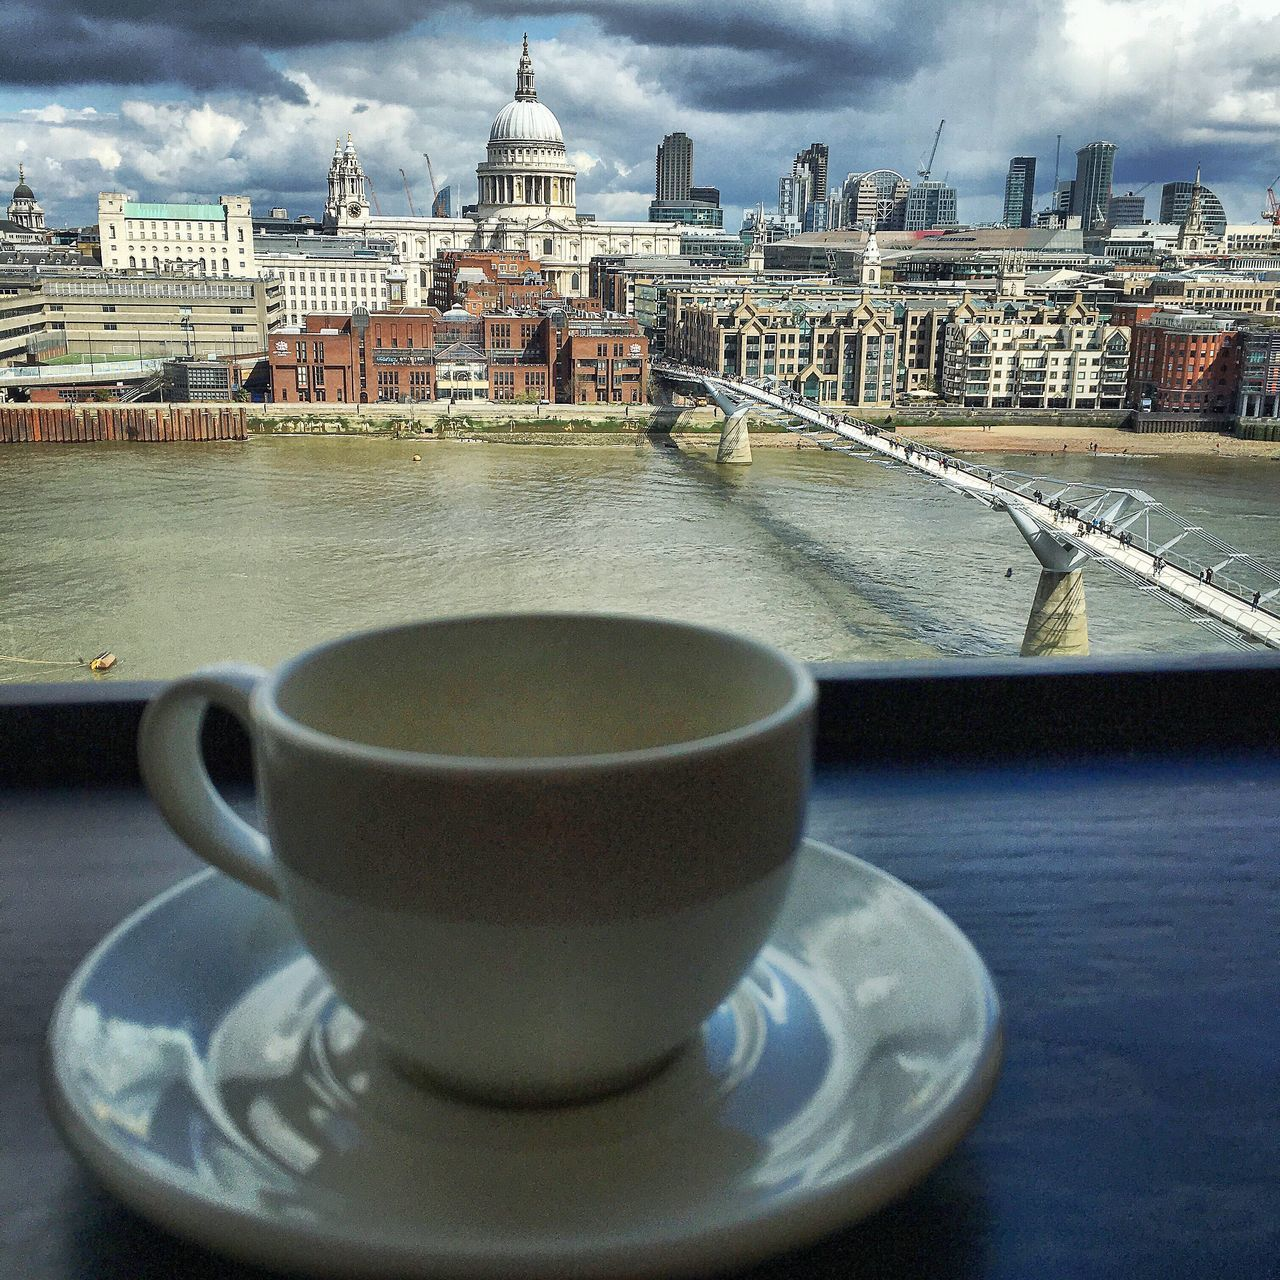 refreshment, drink, architecture, building exterior, coffee cup, built structure, food and drink, sky, coffee - drink, water, day, table, no people, dome, outdoors, close-up, city, freshness